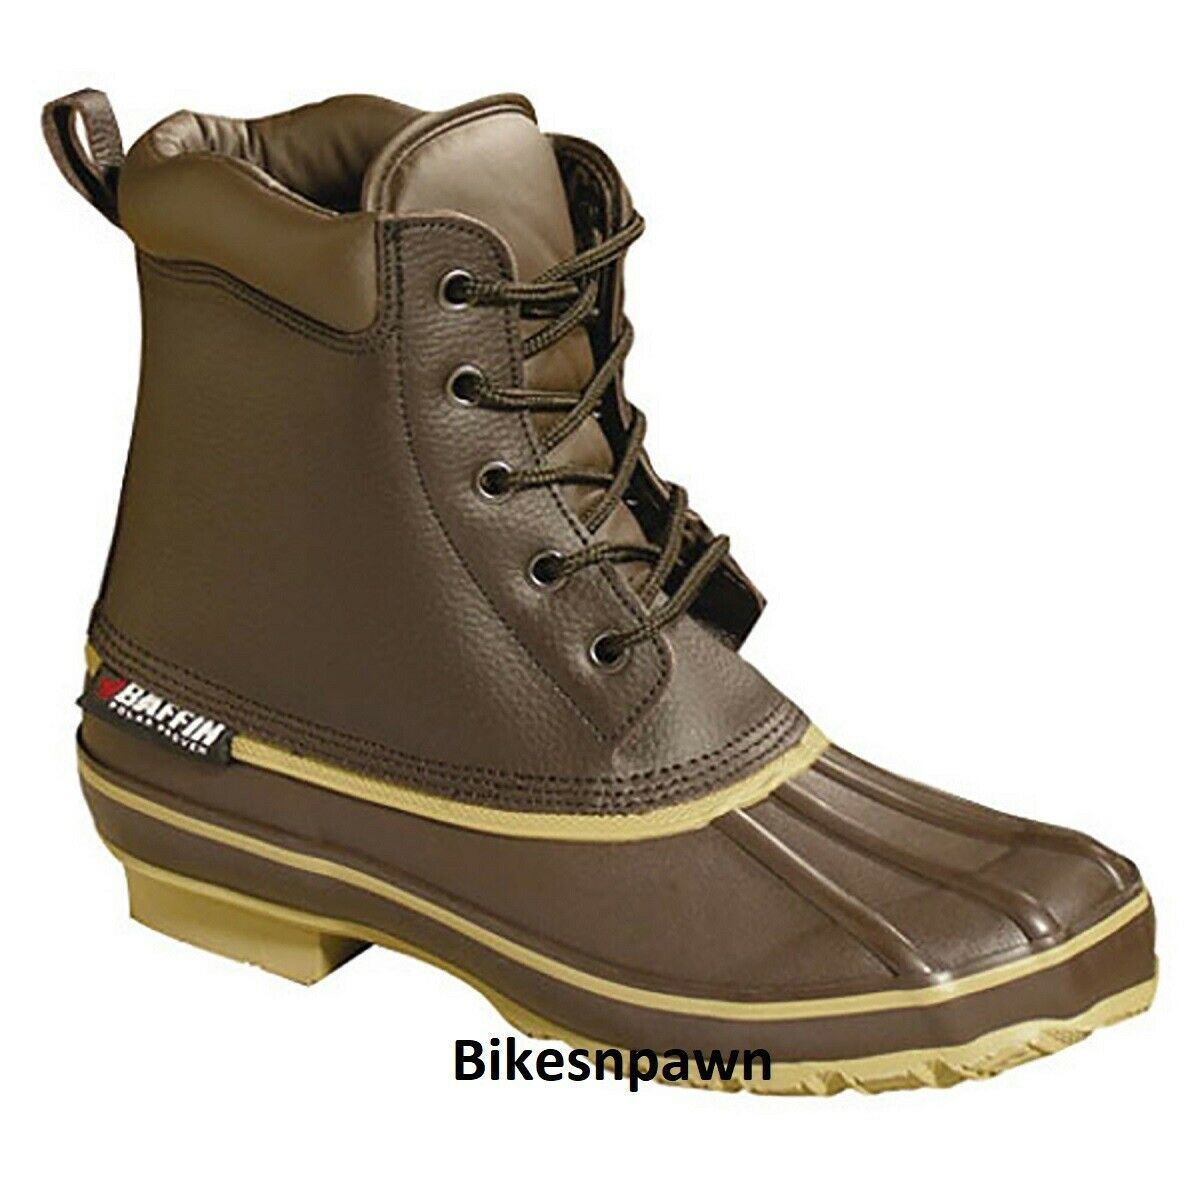 New Mens Size 8 Baffin Moose Waterproof All Season Boots Rated -0 F